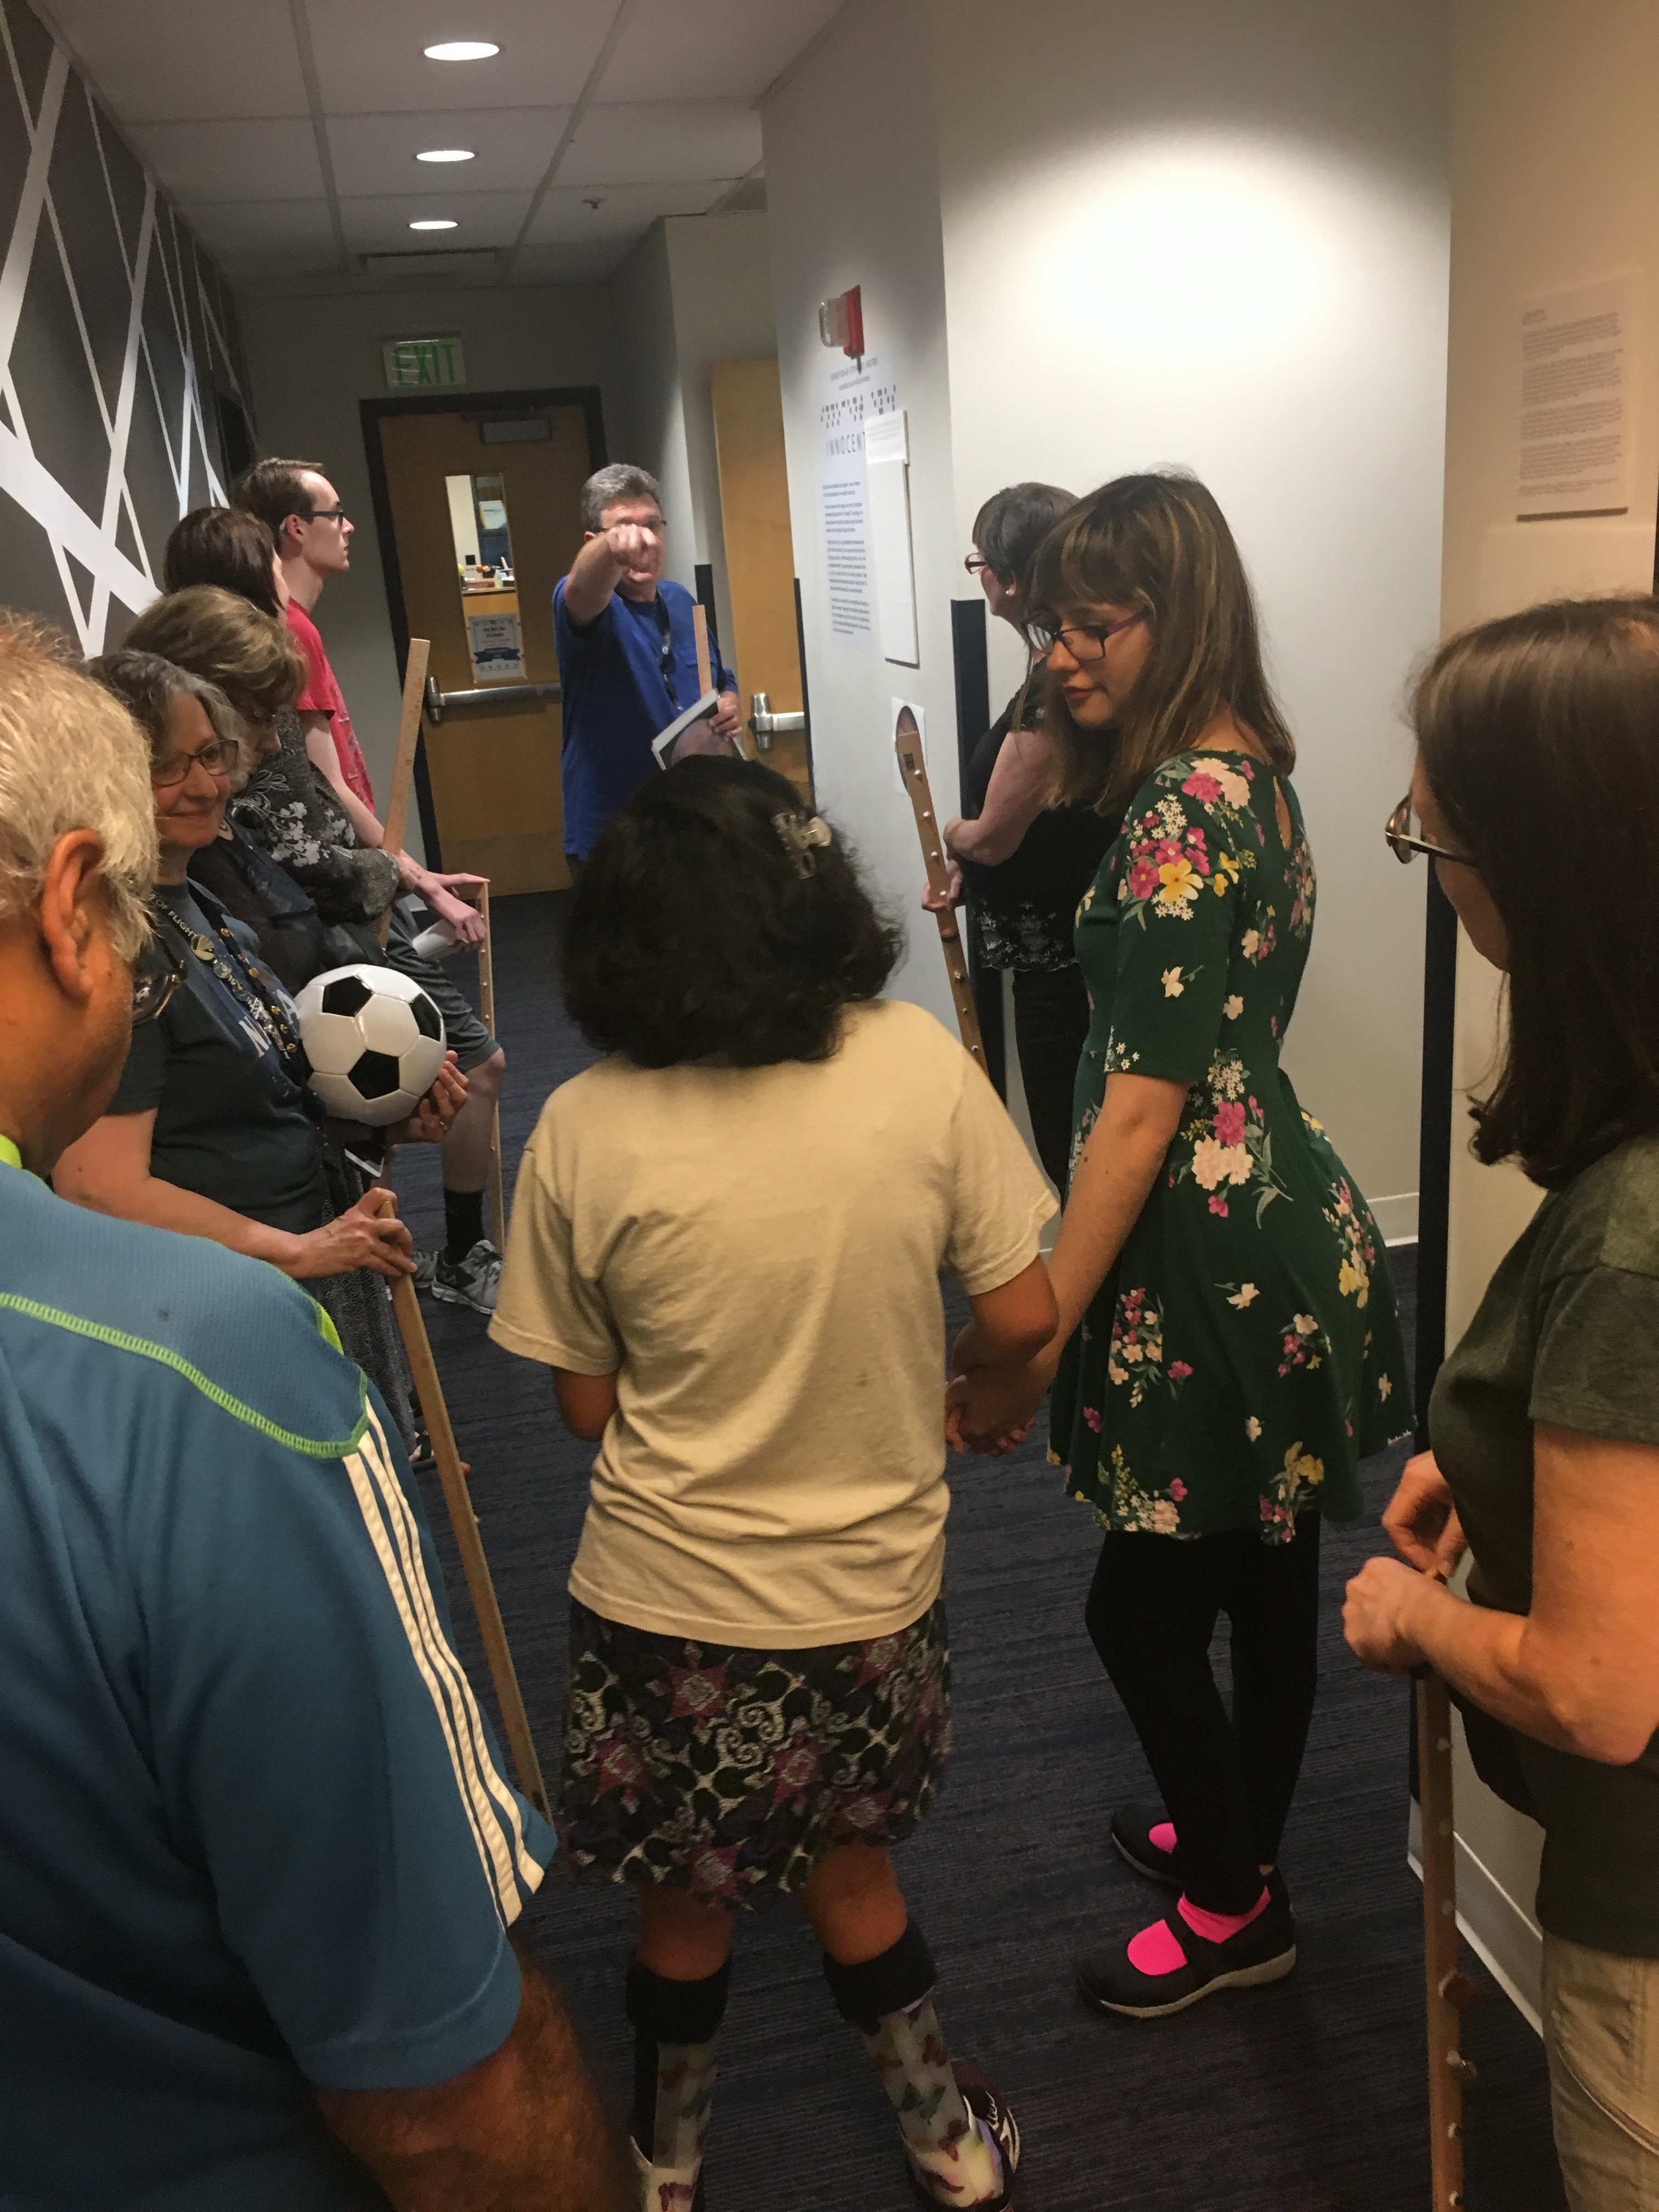 A group of youth patrons and family members walk around WTBBL halls as they go through a scale model of the solar system. One patron holds a soccer ball, representing the size of the sun in relation to each planet (Jupiter is a blueberry).